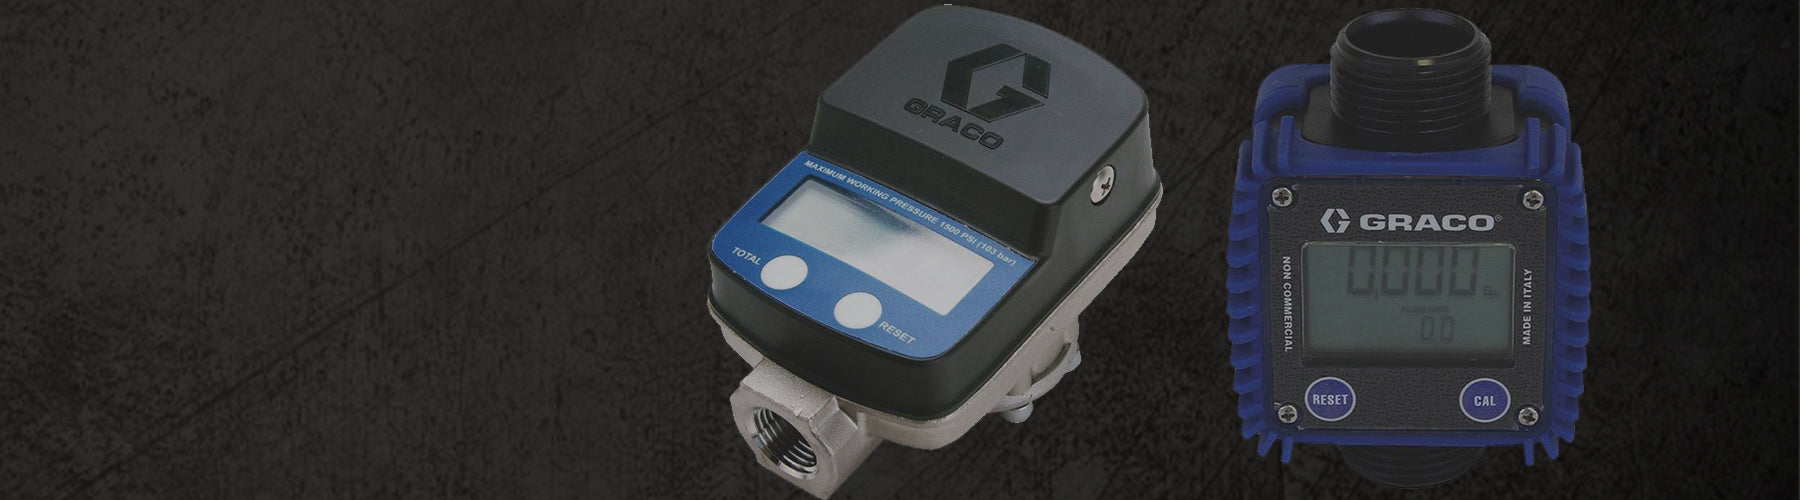 Diesel Exhaust Fluid Meters